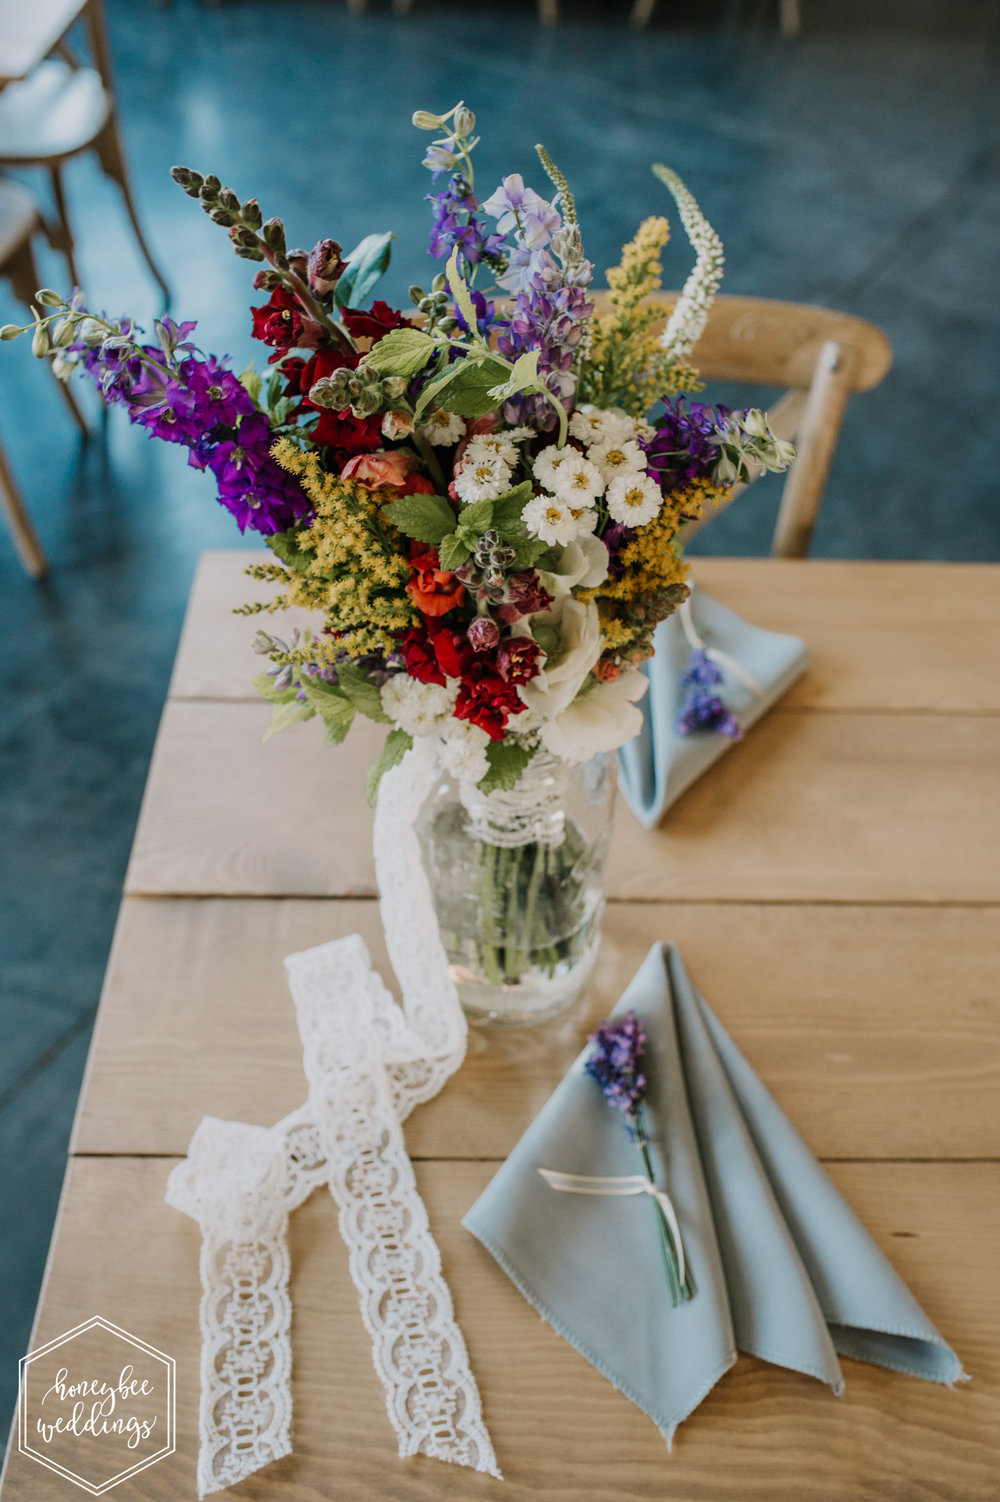 53 White Raven Wedding_Montana Wedding Photographer_Honeybee Weddings_ Meghan Maloney + Arza Hammond 2018-0026.jpg